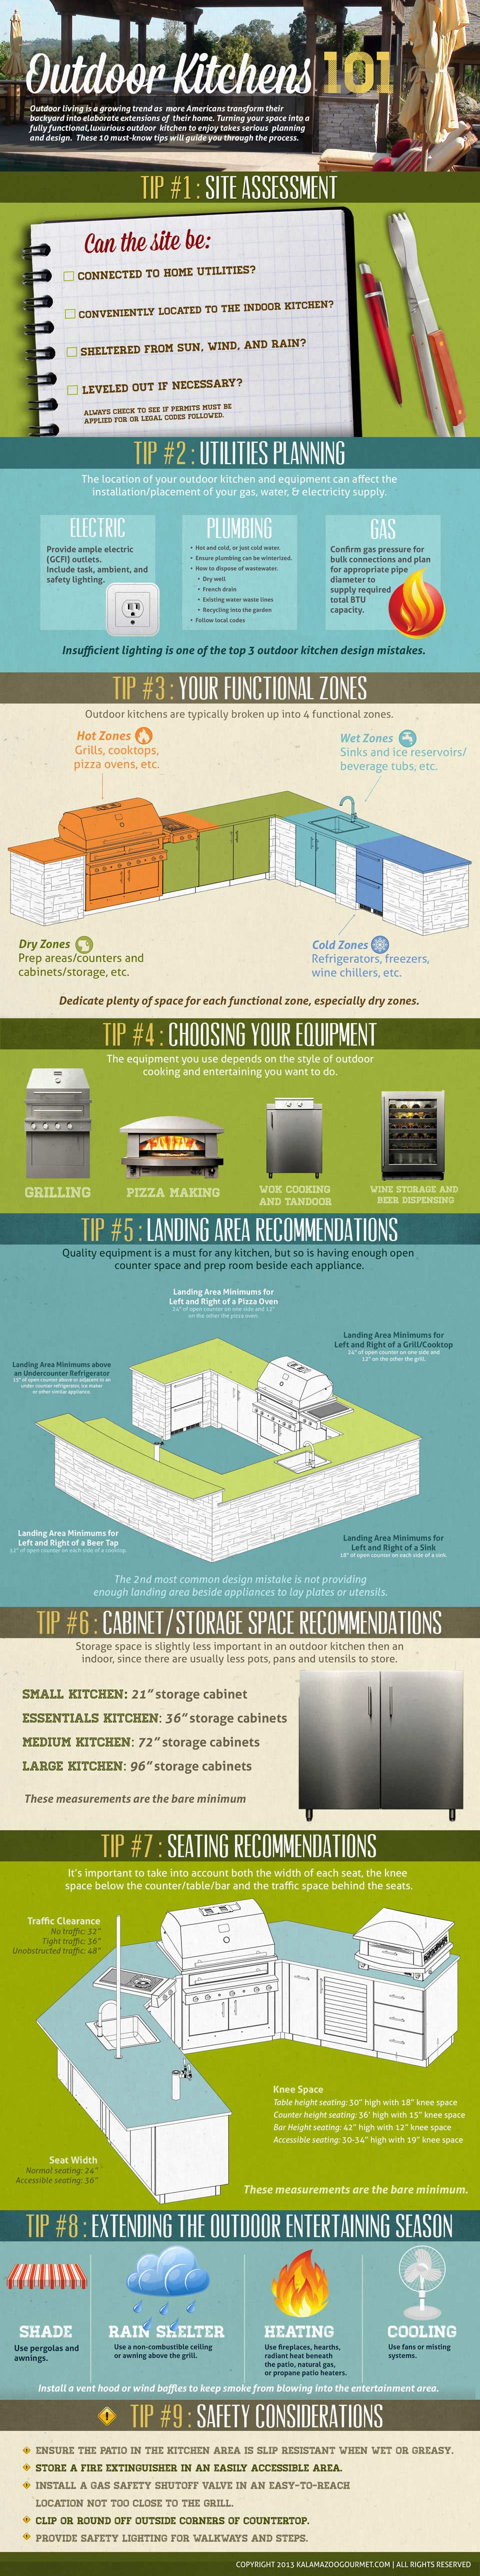 outdoor-kitchens-101-infographic